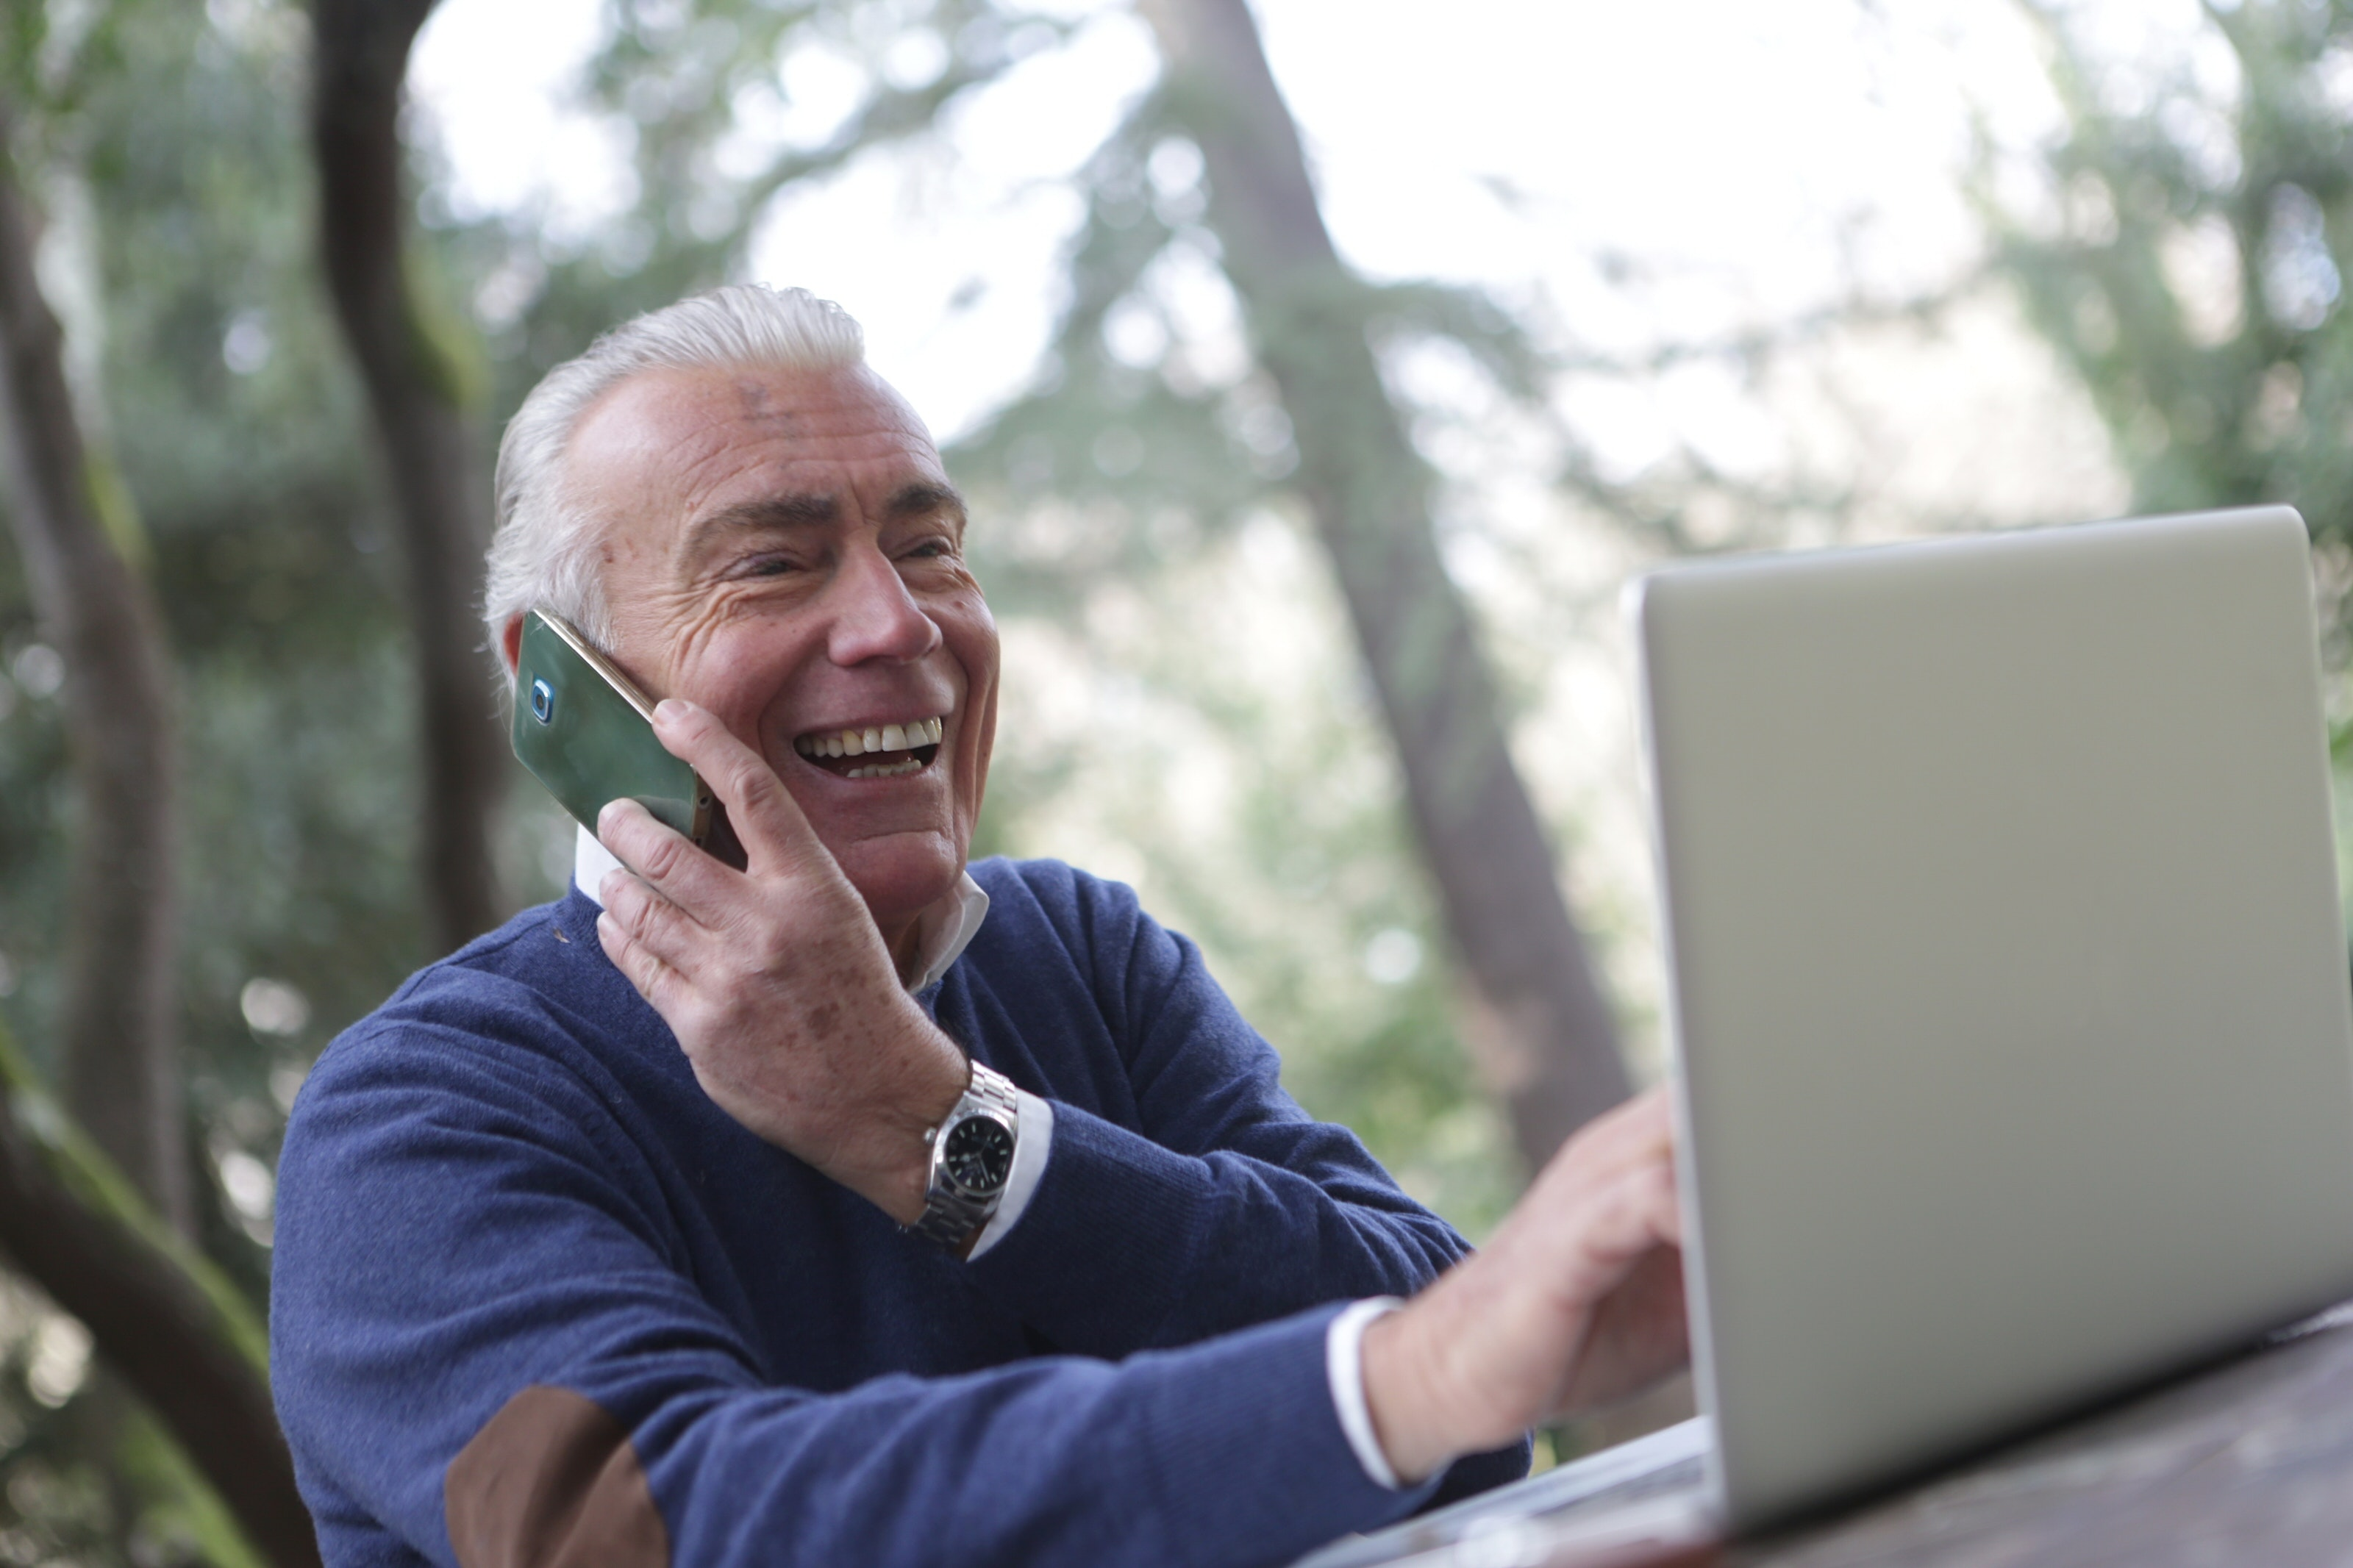 Older man outdoors on phone with laptop